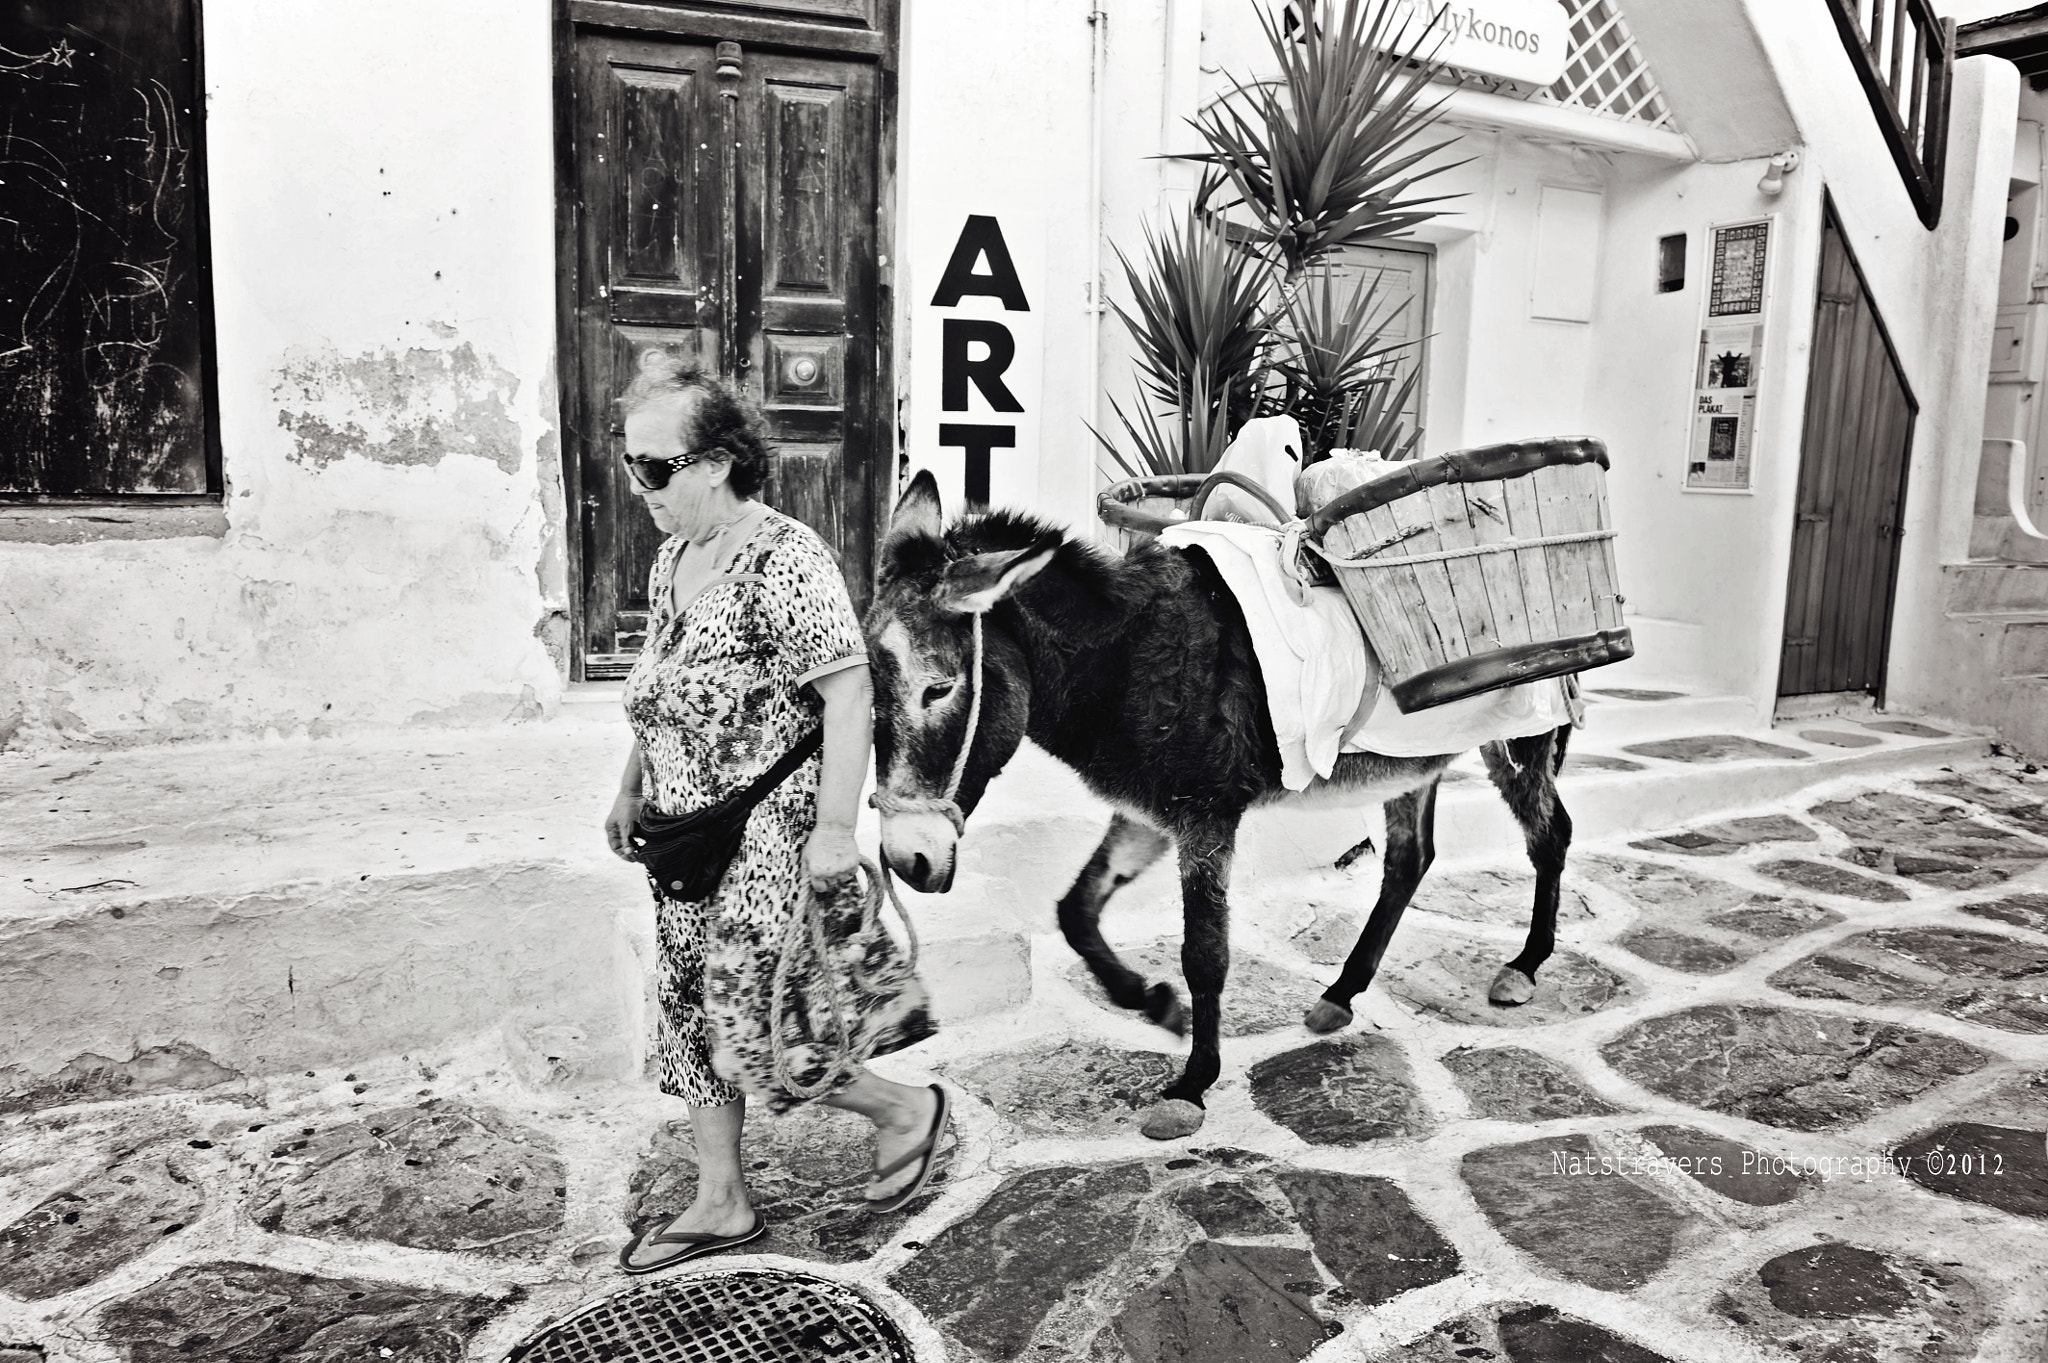 Photograph Donkey in Mykonos by Nathalie Stravers on 500px